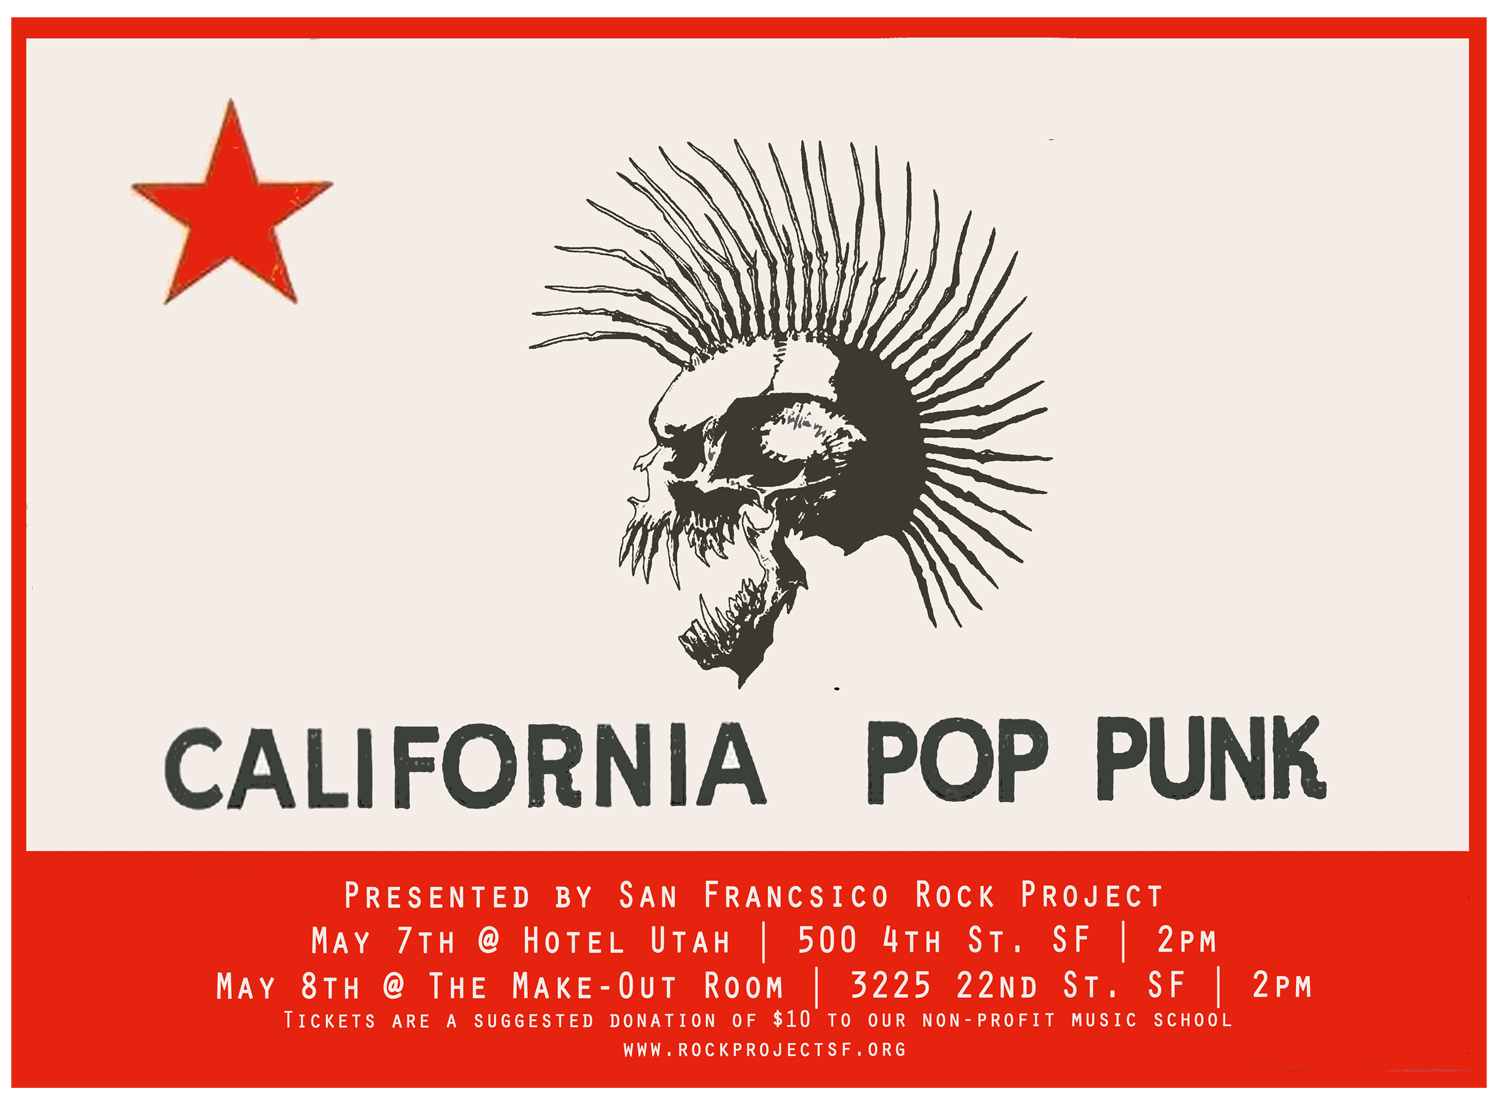 CA_POP_PUNK_SMALL_2010.jpg